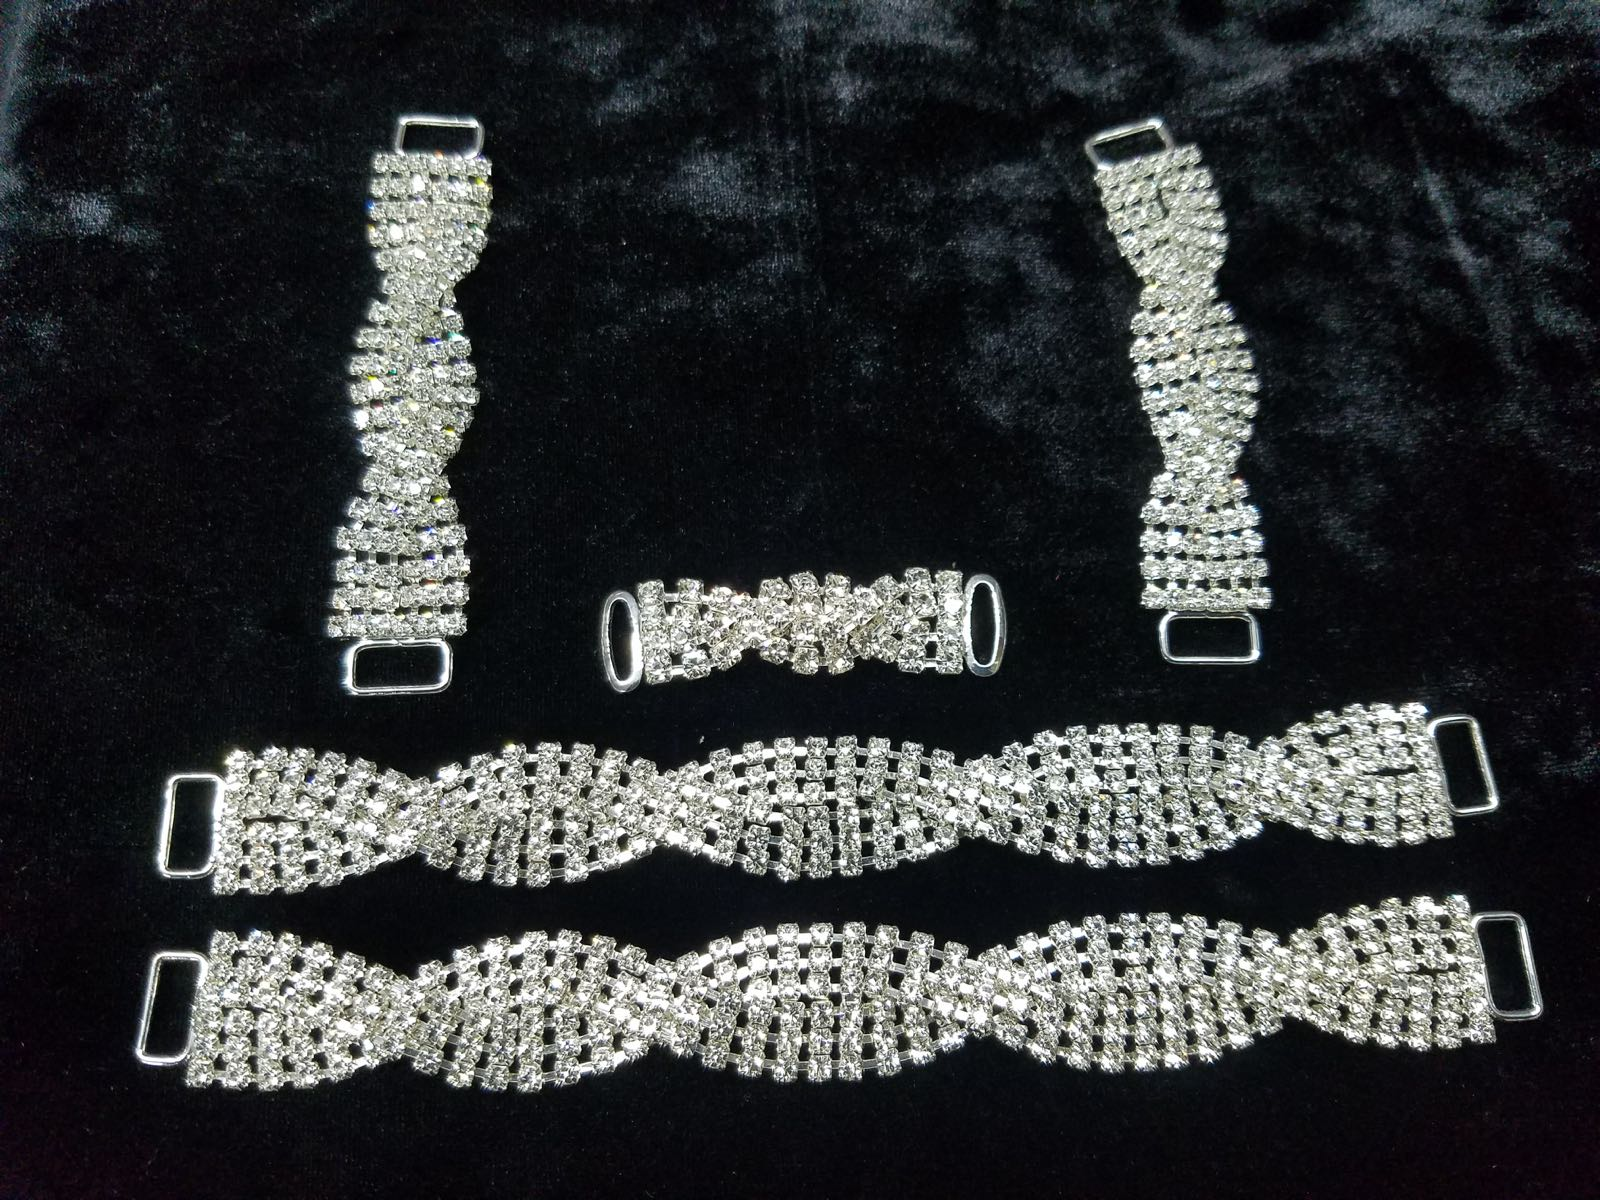 Set C, Silver with clear crystals, $75.00